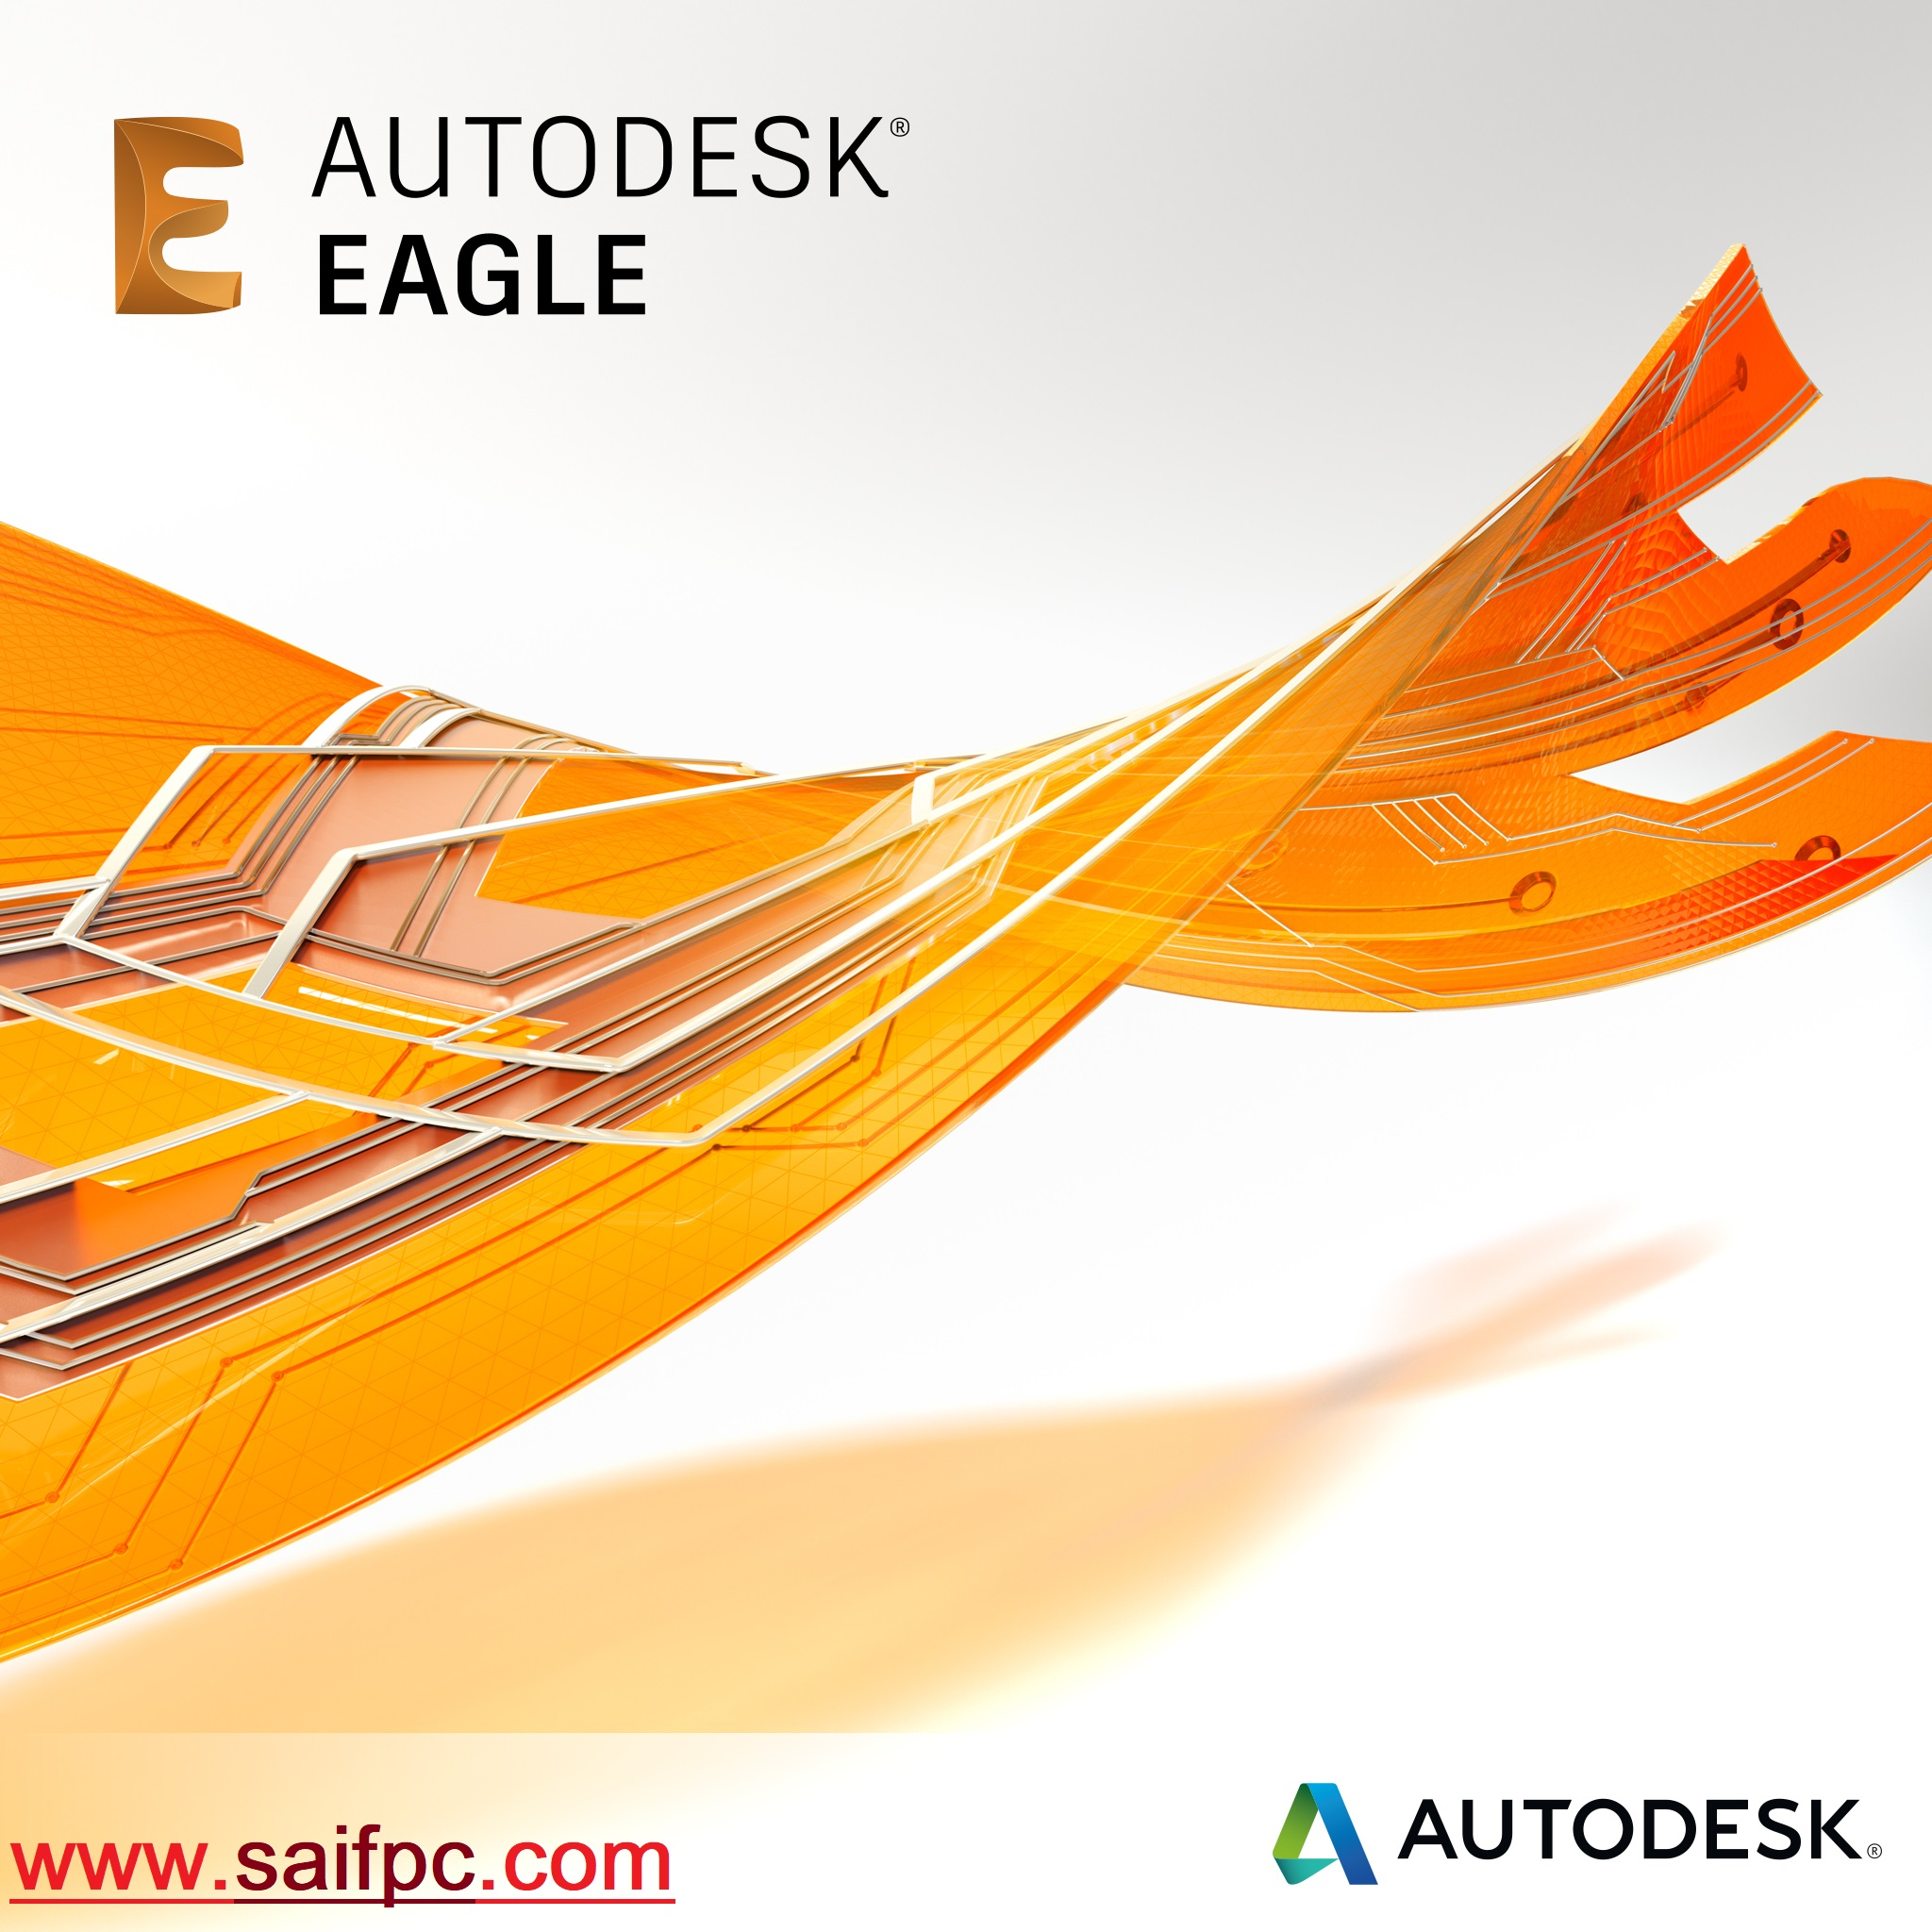 Autodesk EAGLE Premium 9.5.2 Crack + Serial Key 2020 Free Download